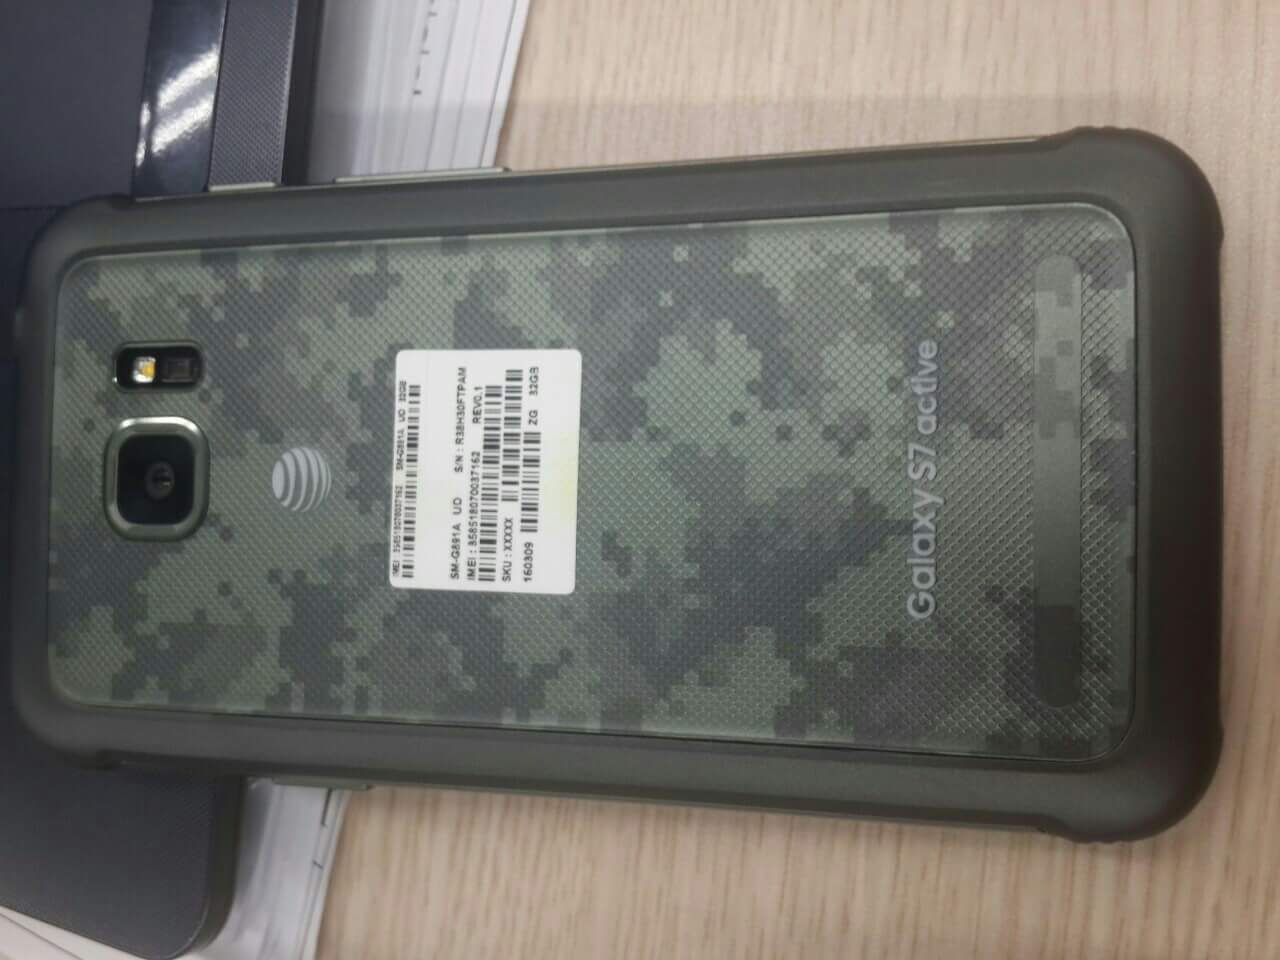 Samsung Galaxy S7 Active tough phone is real, shown off in pictures